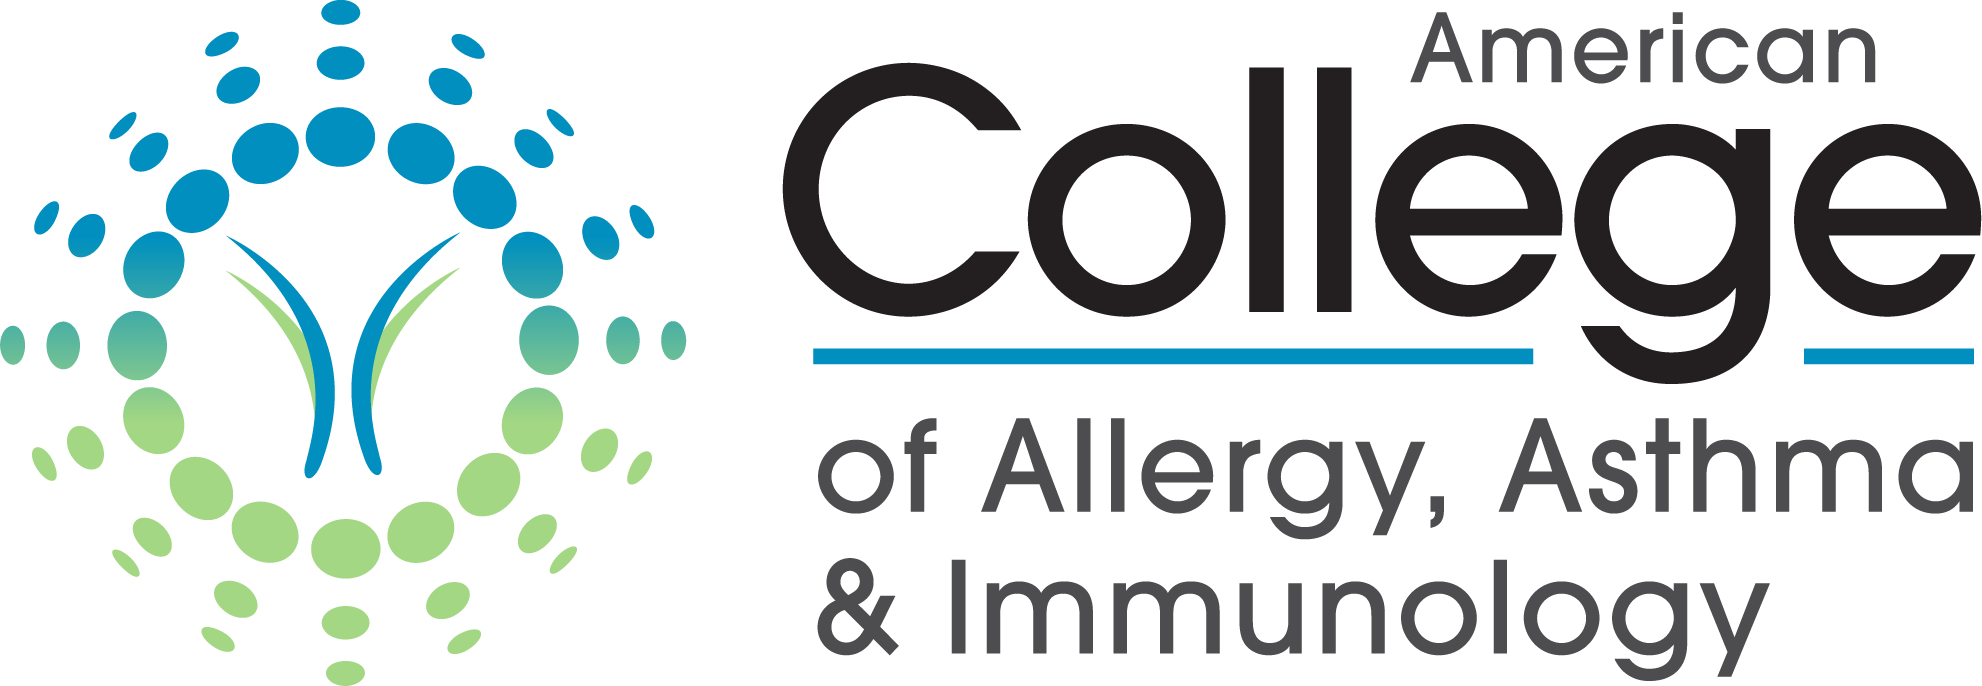 American College of Allergy, Asthma, & Immunology logo